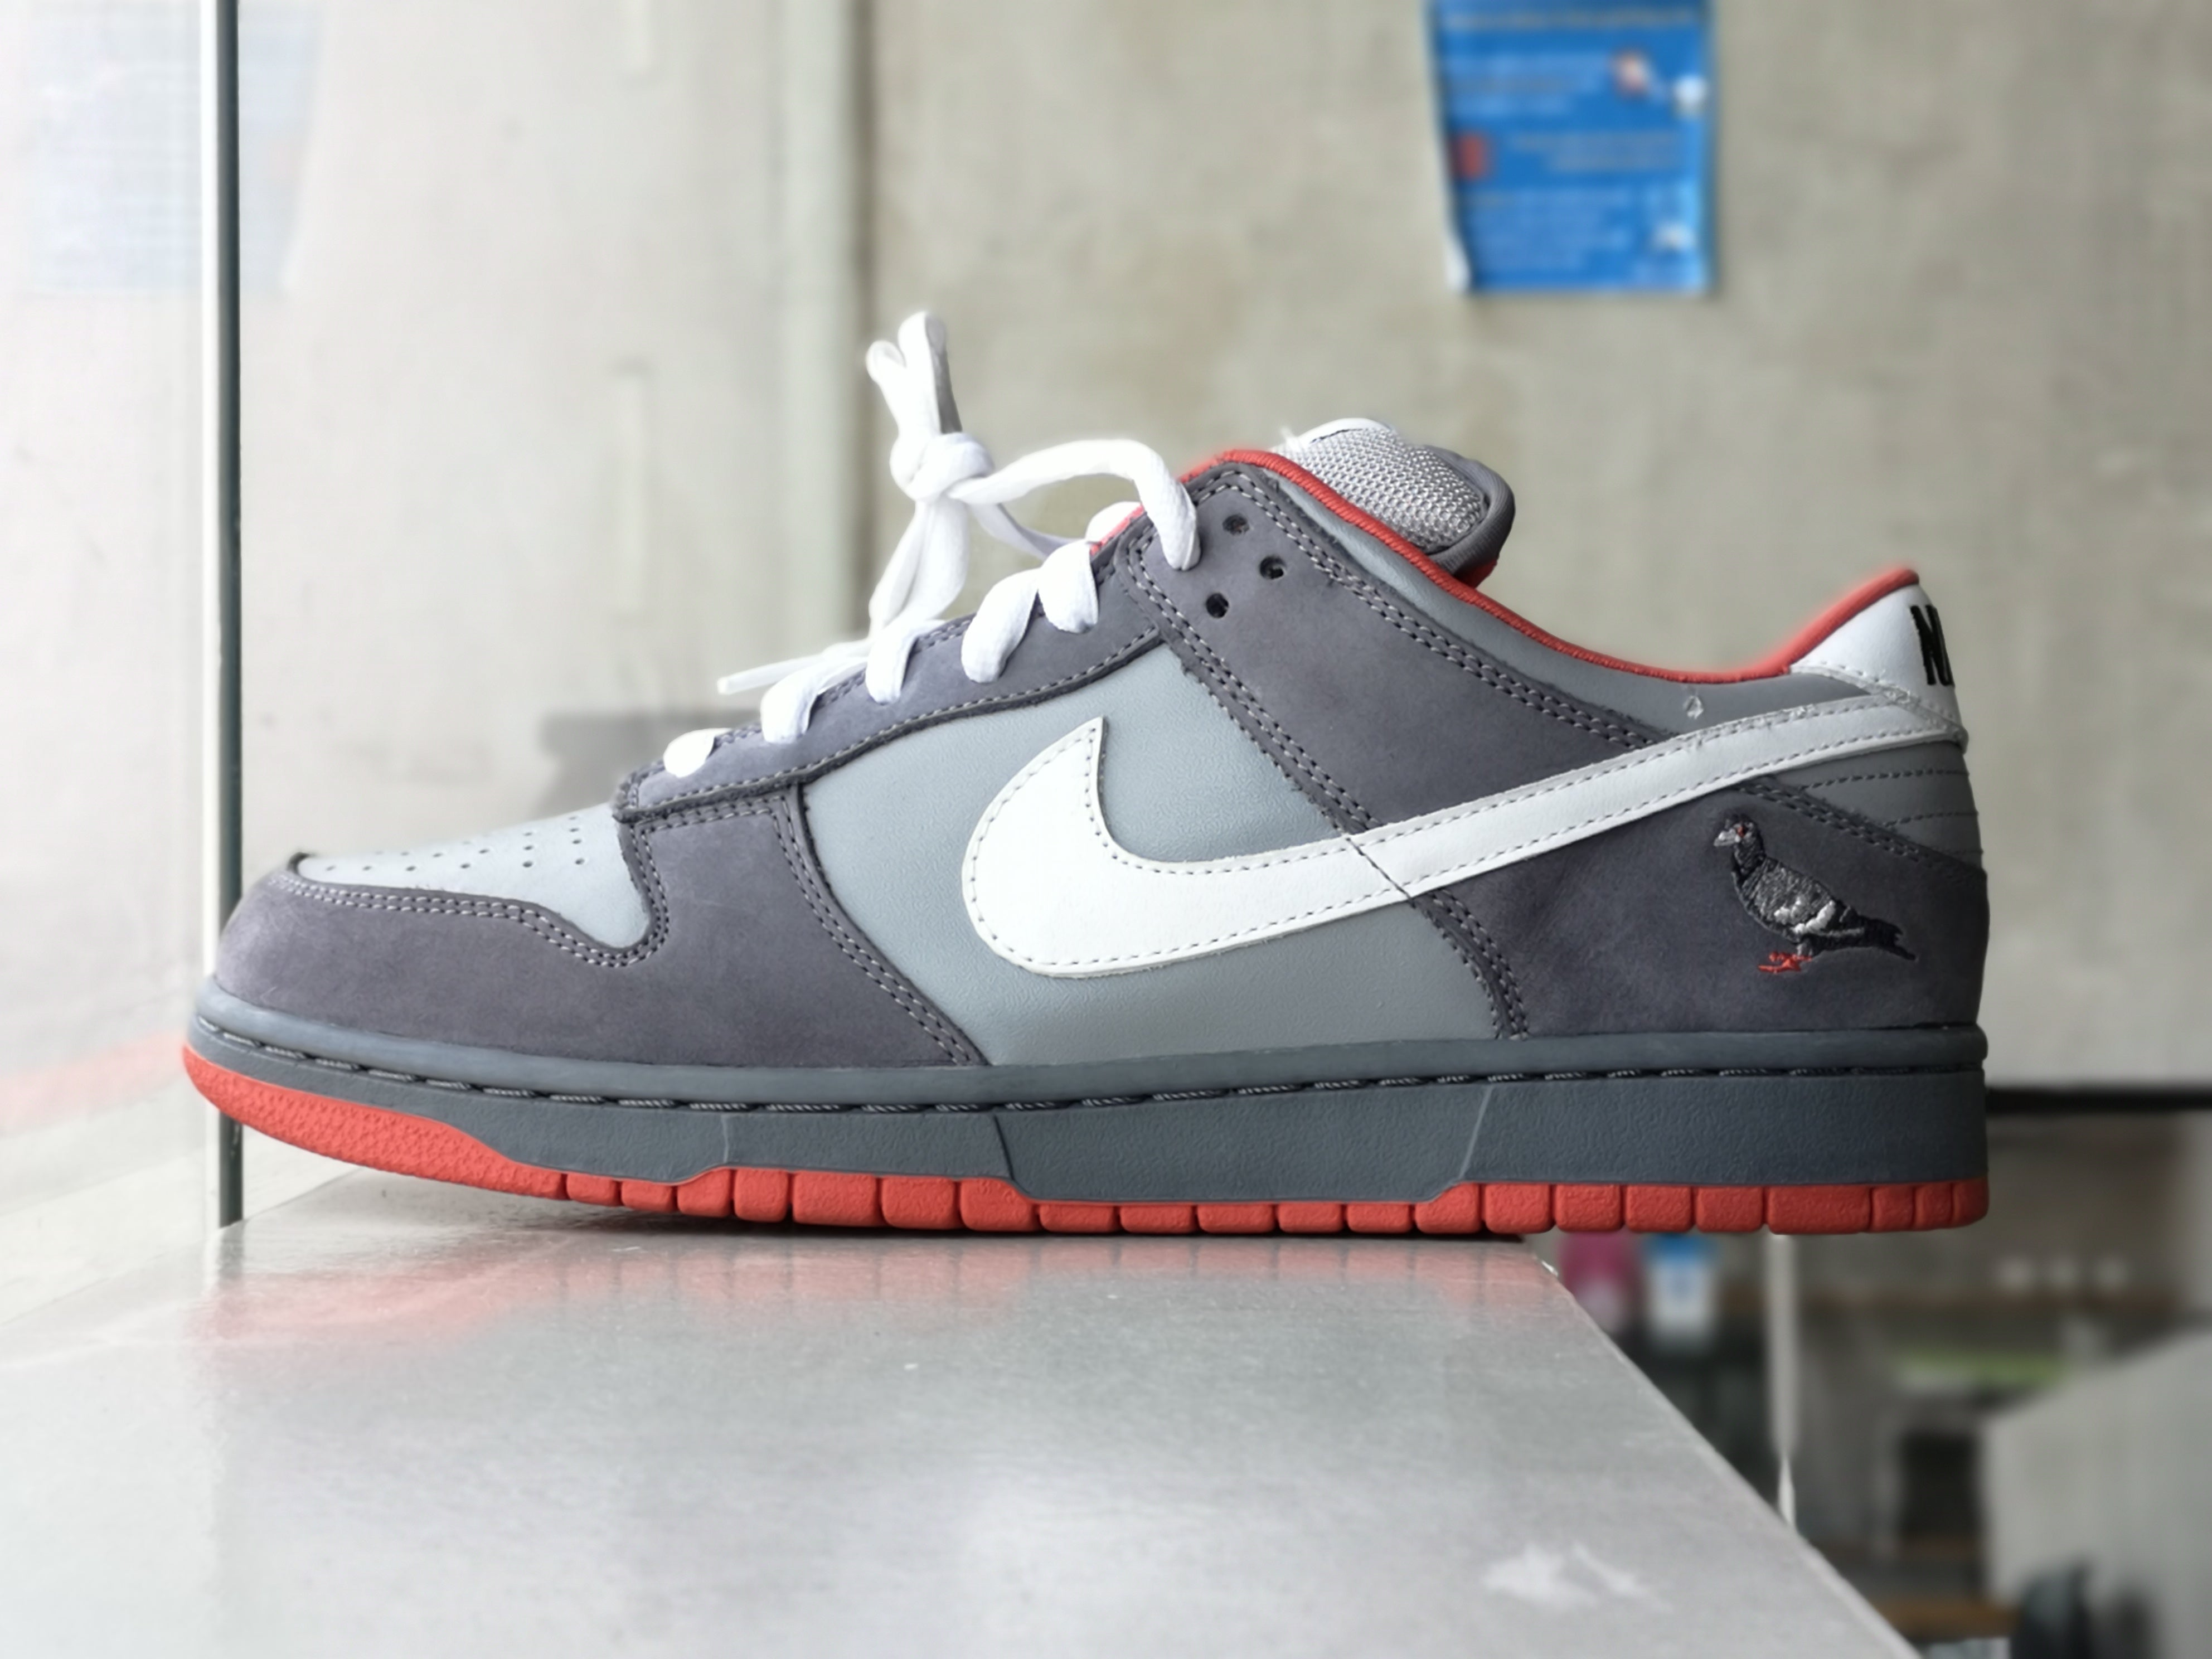 Nike Dunk SB Low Staple Pigeon 2004 (signed)